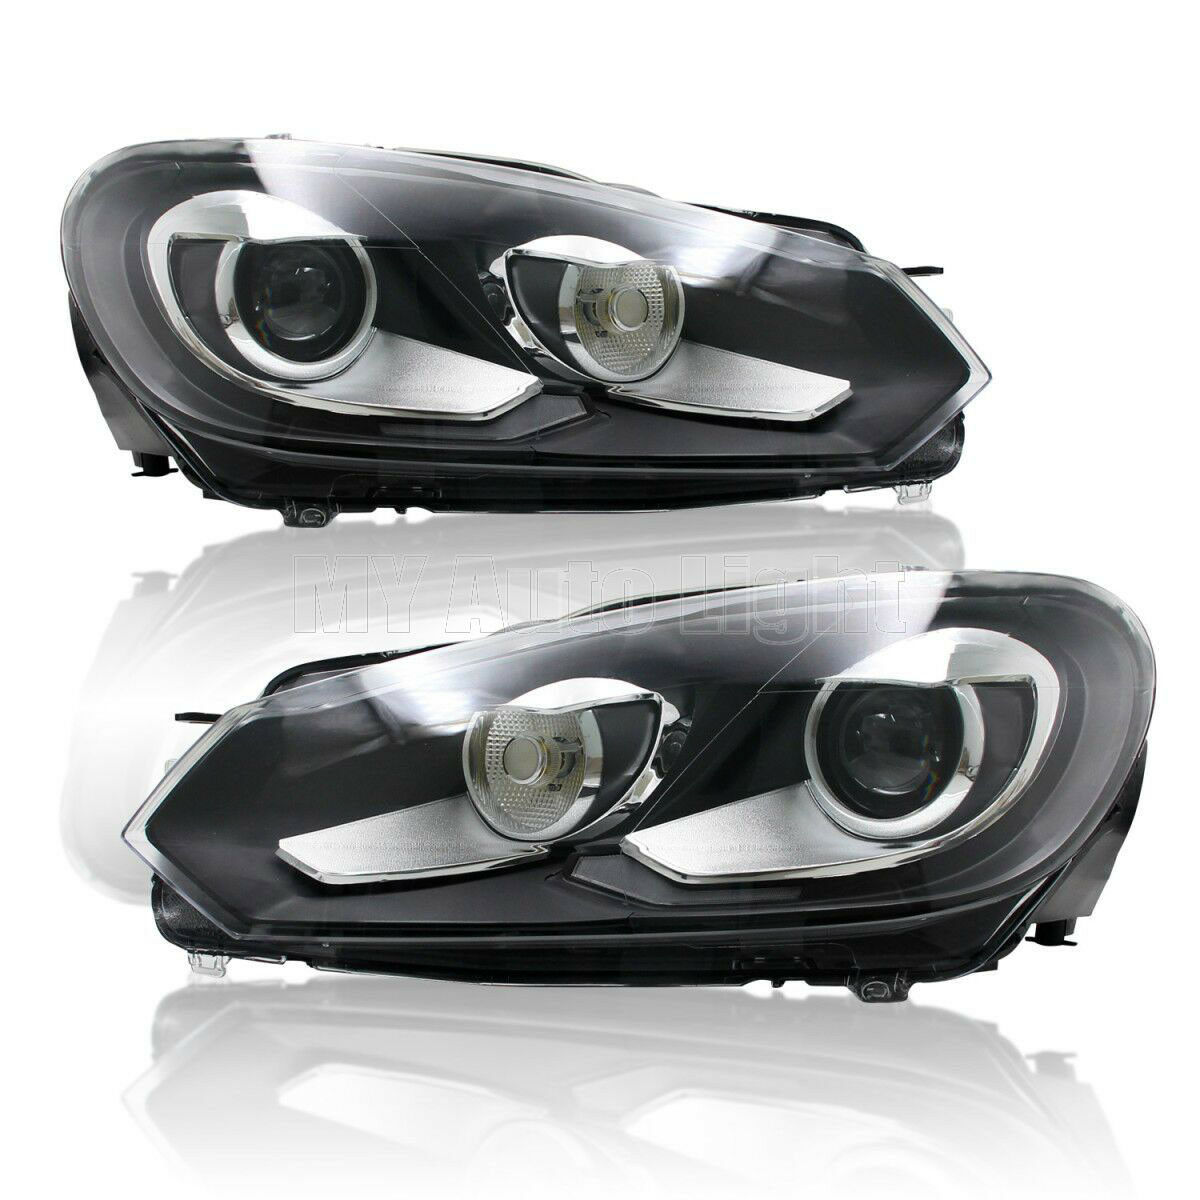 For 2010 2012 Vw Golf Mk6 Gti Headlights With Bi Xenon Projector And Turn Signal Ebay